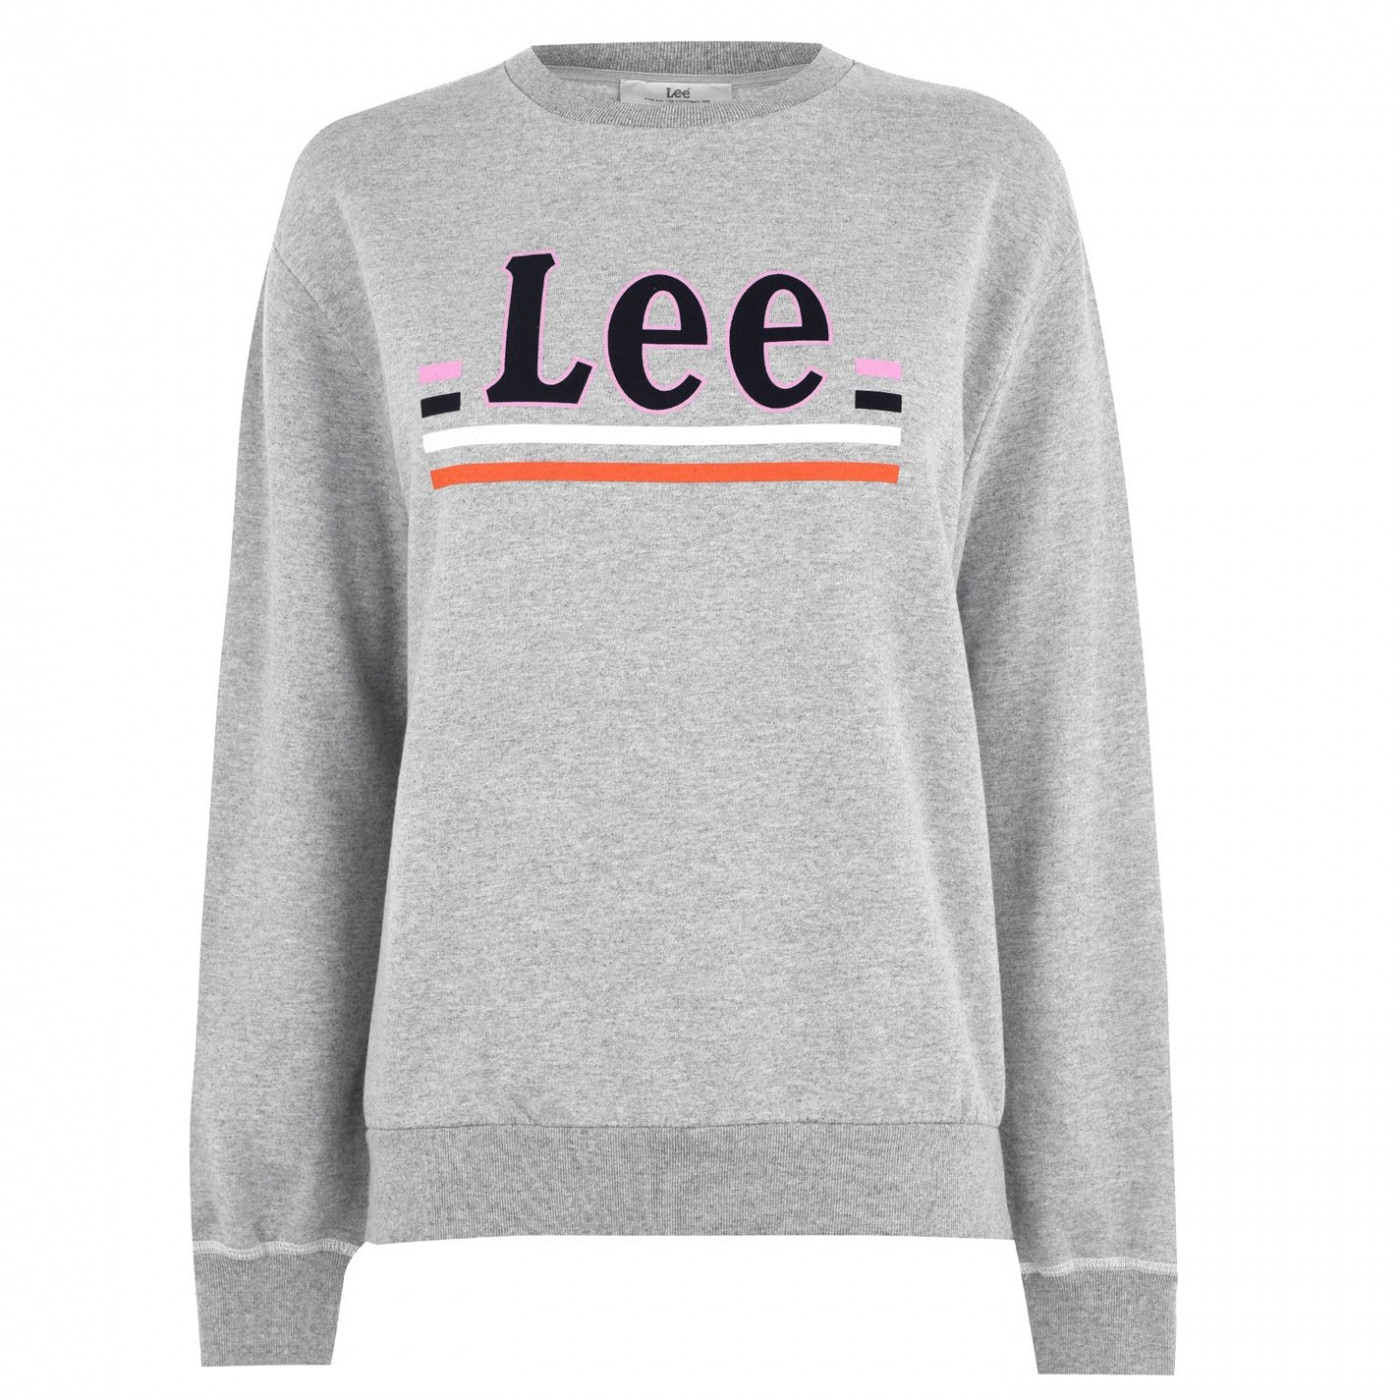 Lee Jeans Logo Sweatshirt